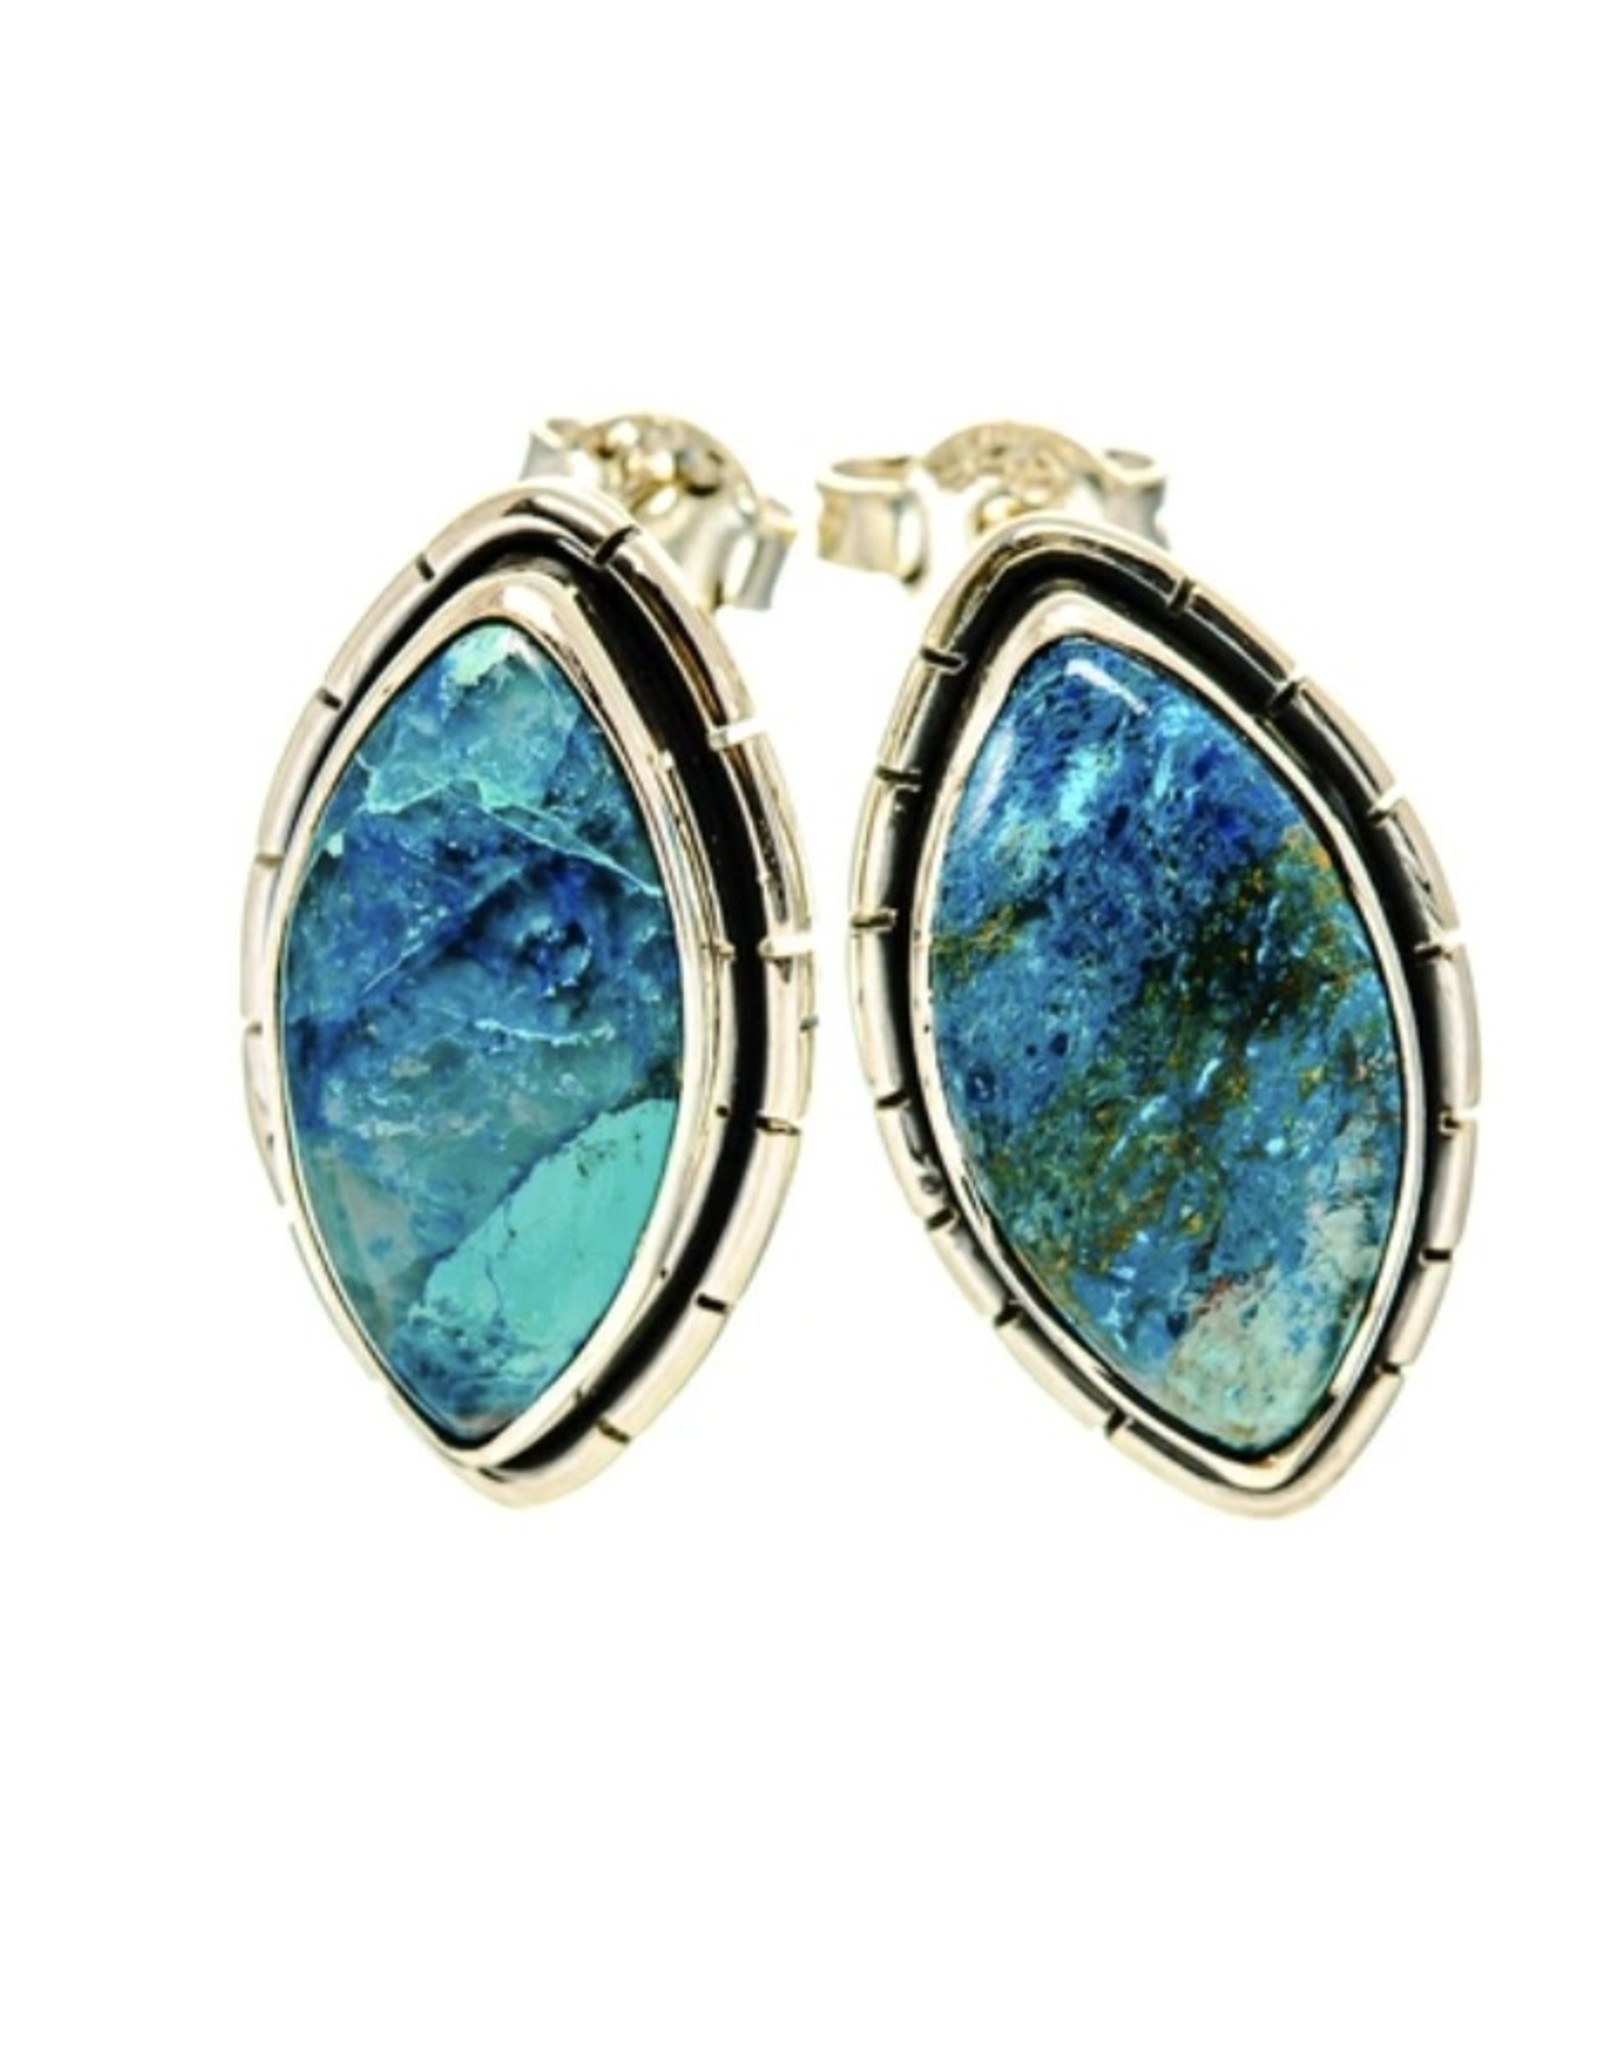 Chrysocolla In Quartz Earrings - Stud